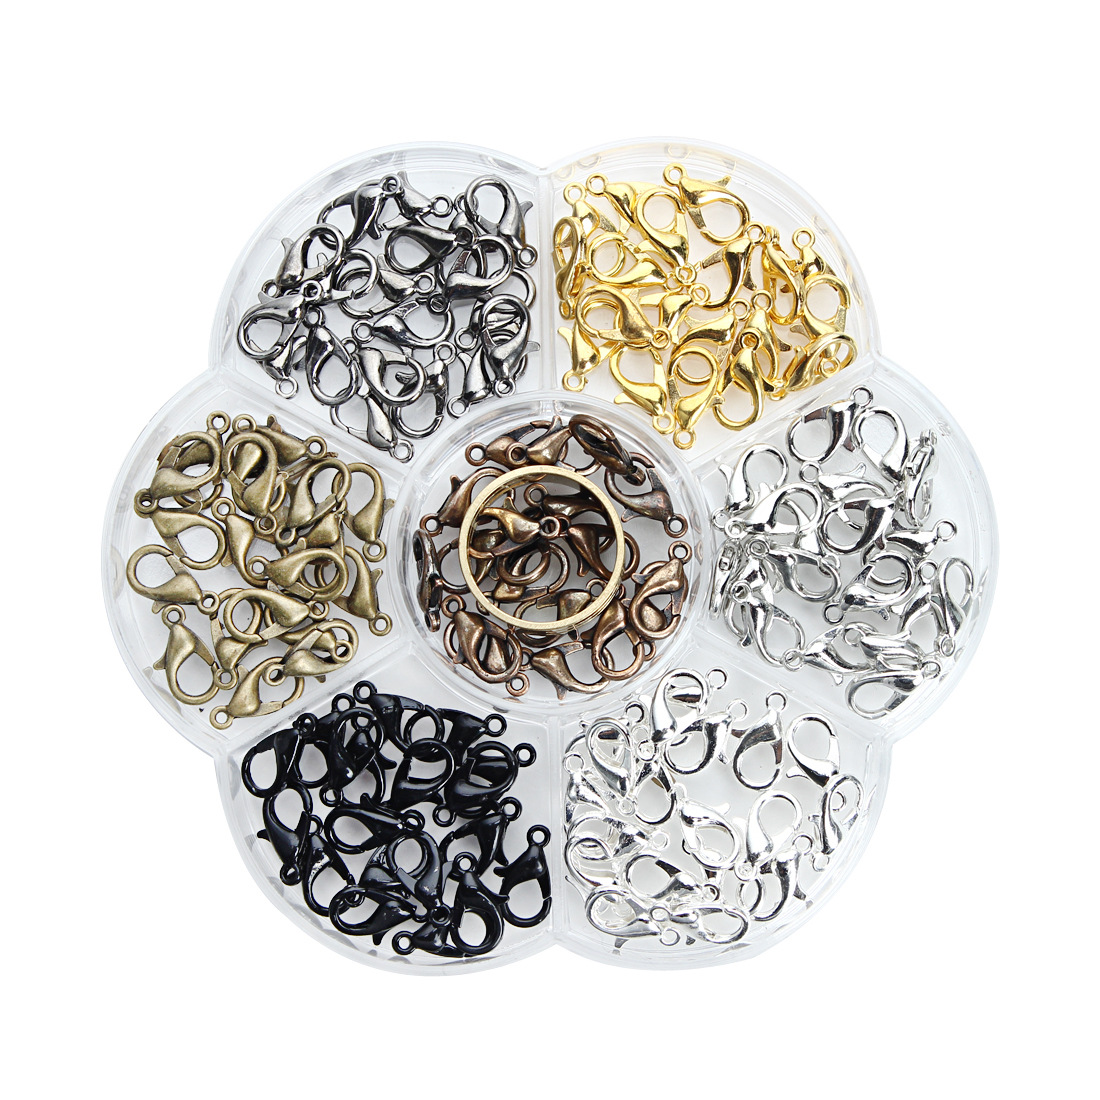 12x6mm 140PCs Zinc Alloy gold color Antique Bronze Silver Lobster Clasps mixed DIY Jewelry Findings Components with Box